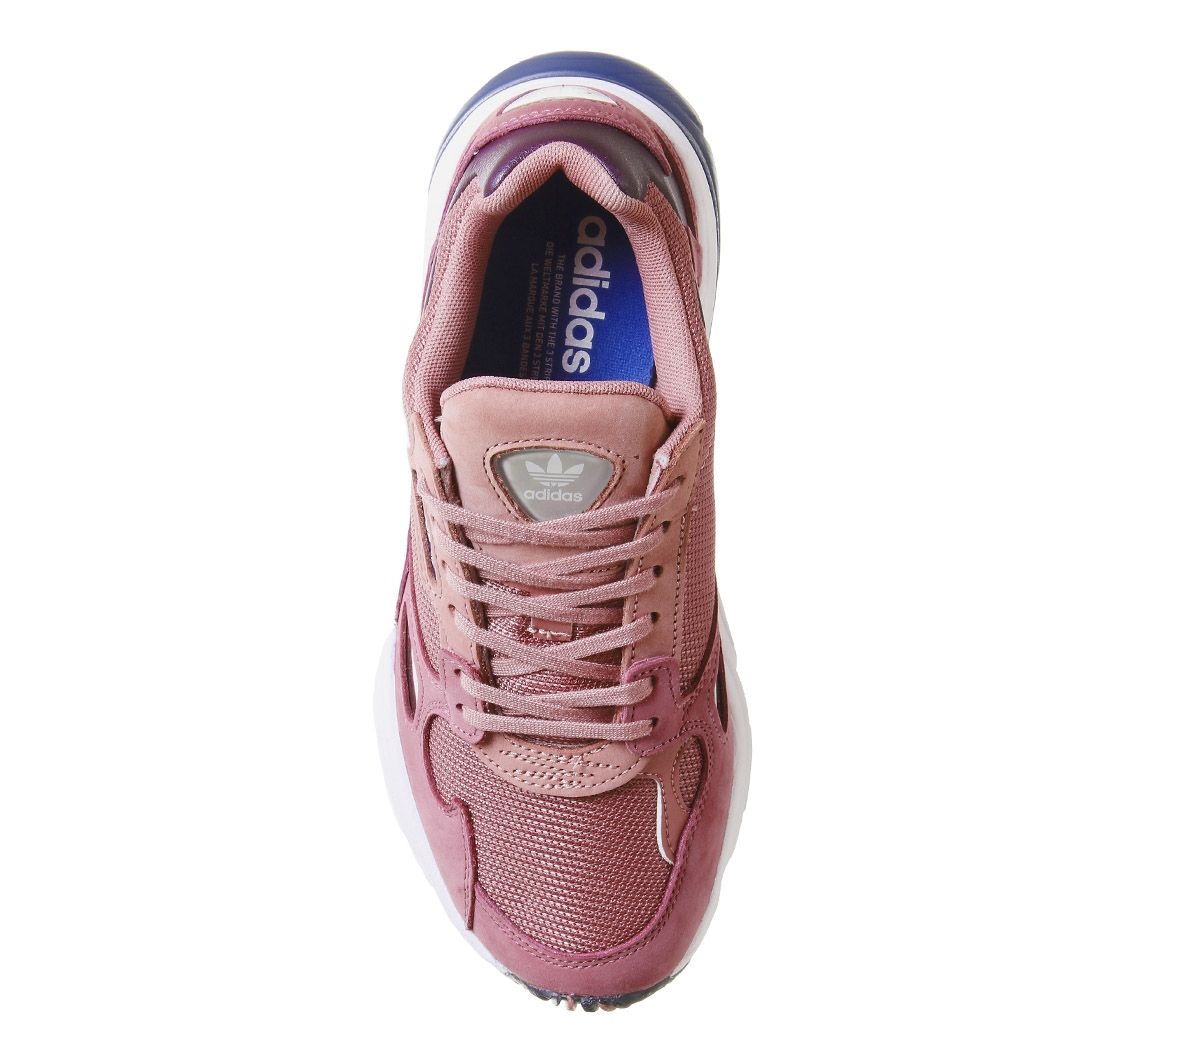 timeless design 7b463 1a6bc adidas Falcon Trainers Pink Dark Blue - Hers trainers